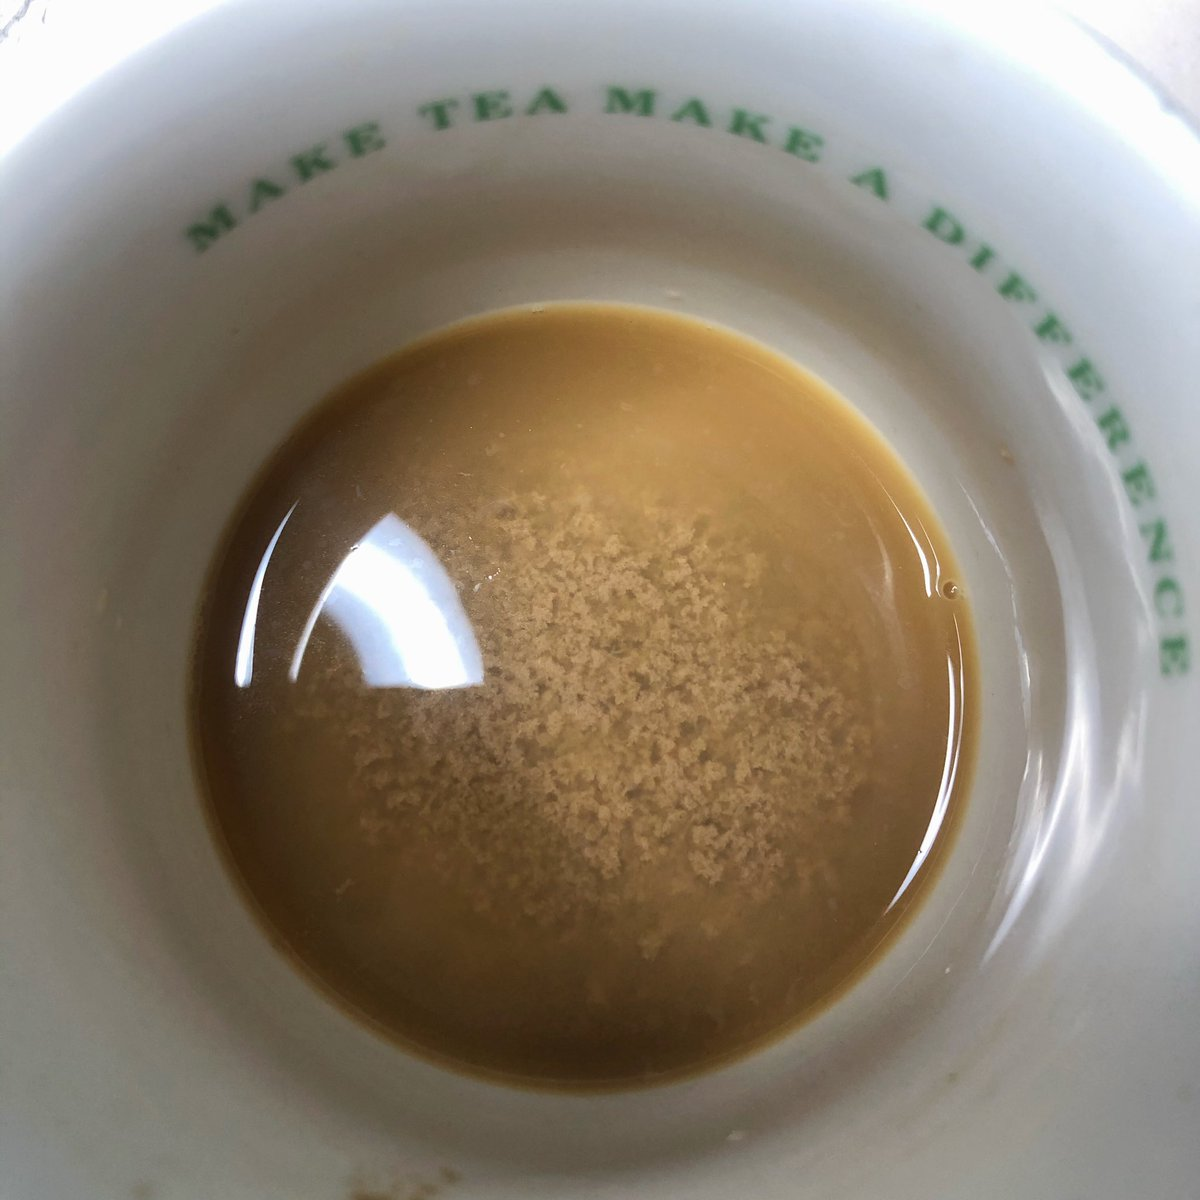 Ruth Carden On Twitter Should Have Stuck With Tea Got New Coffee Lavazza Gold Qualita Oro It Curdles My Soy Milk Tried Putting In The Milk First Then The Coffee,Bamboo Floors Drawing